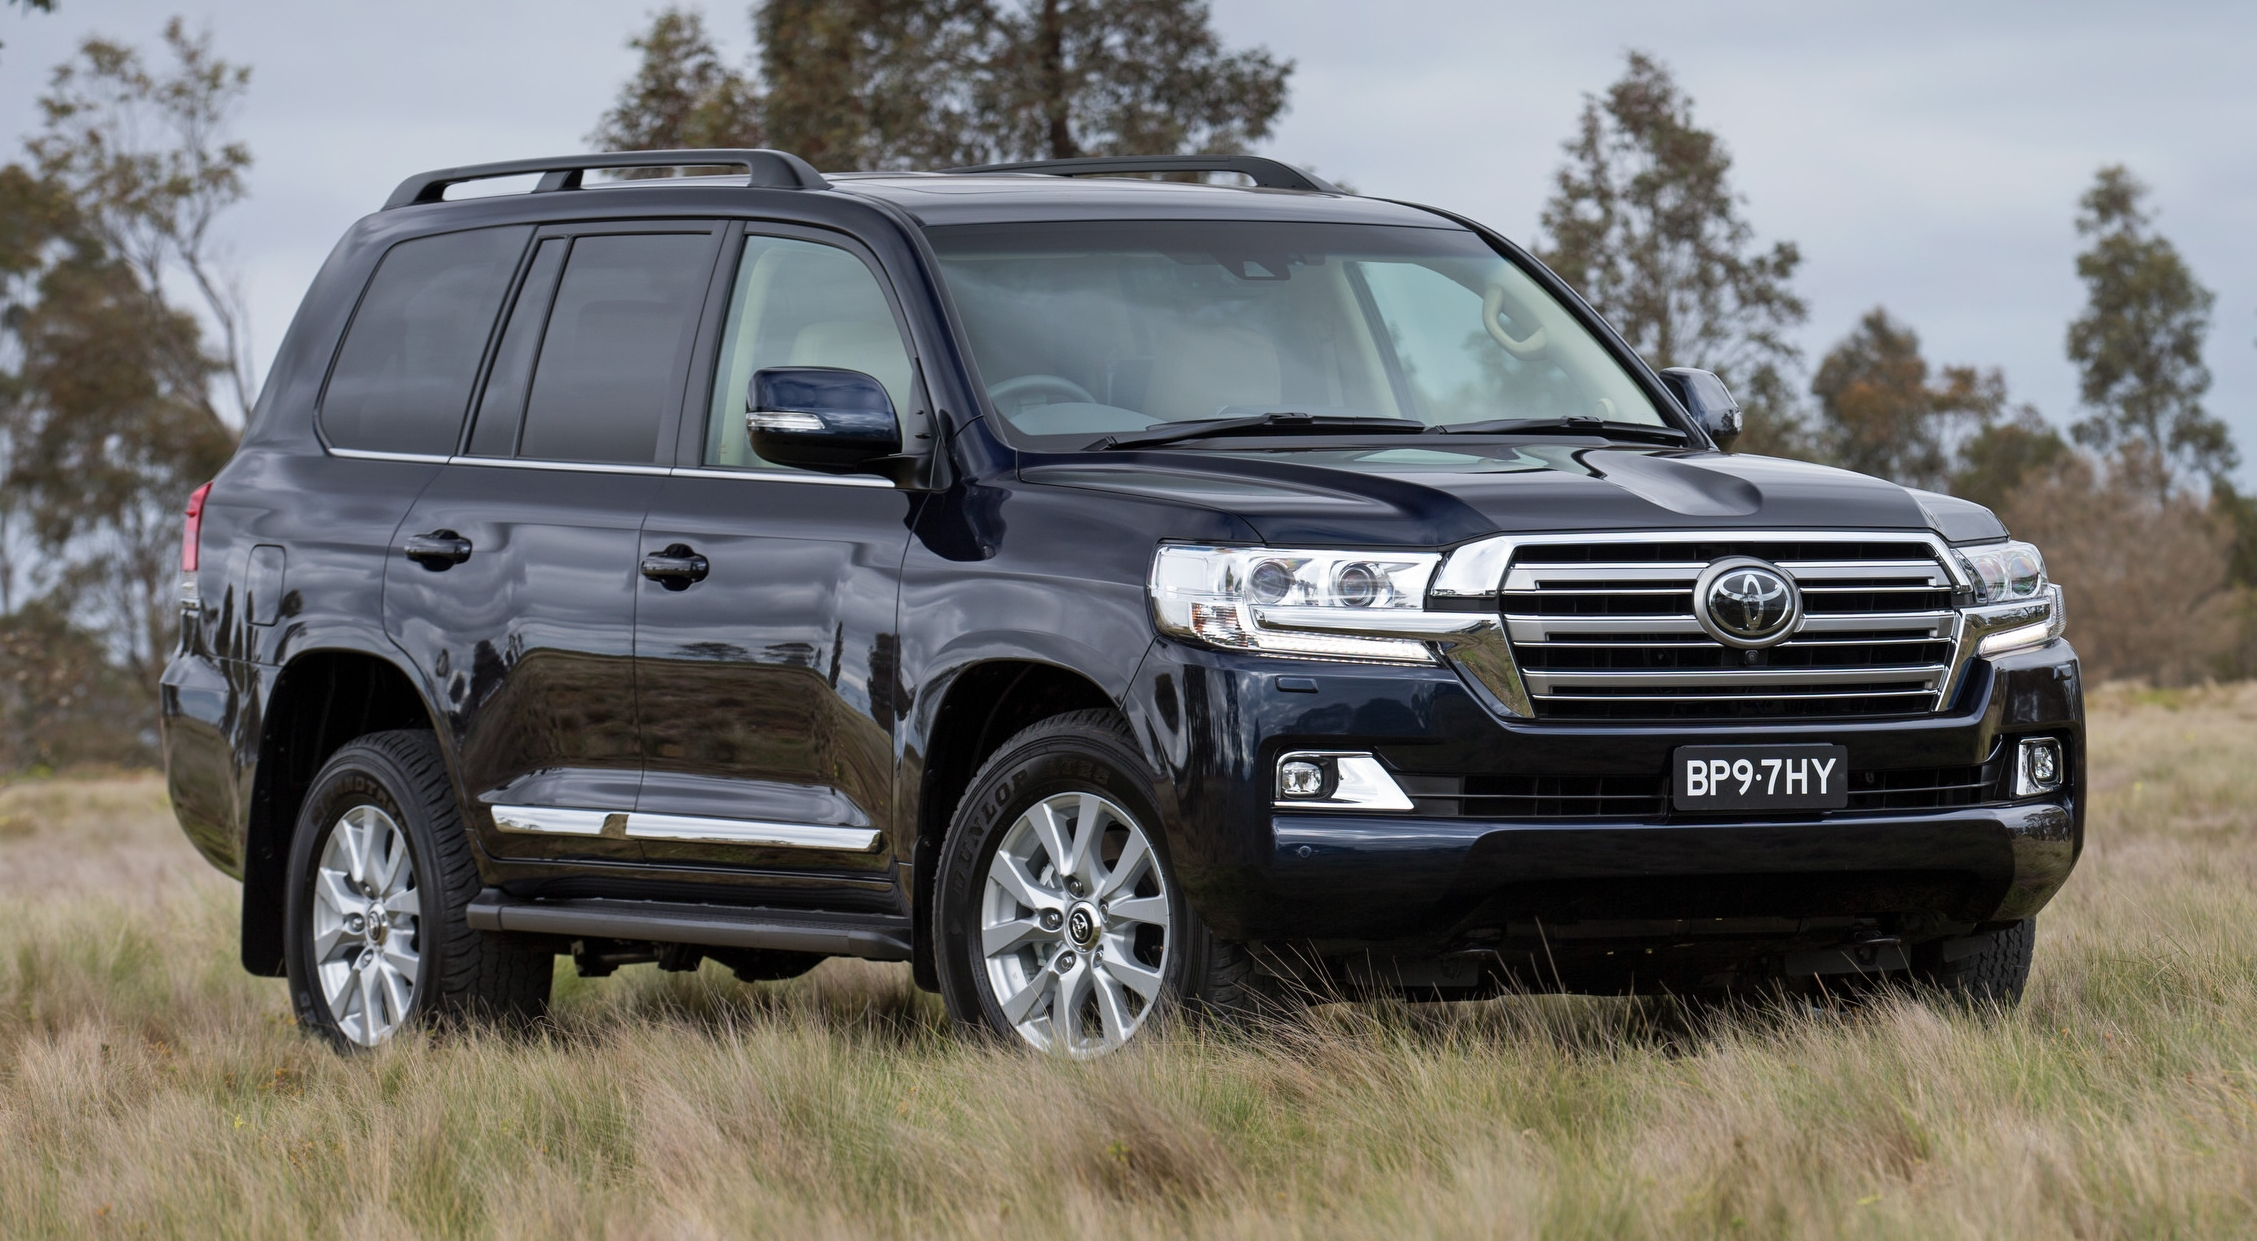 2016 Toyota Land Cruiser - the J200 facelift debuts